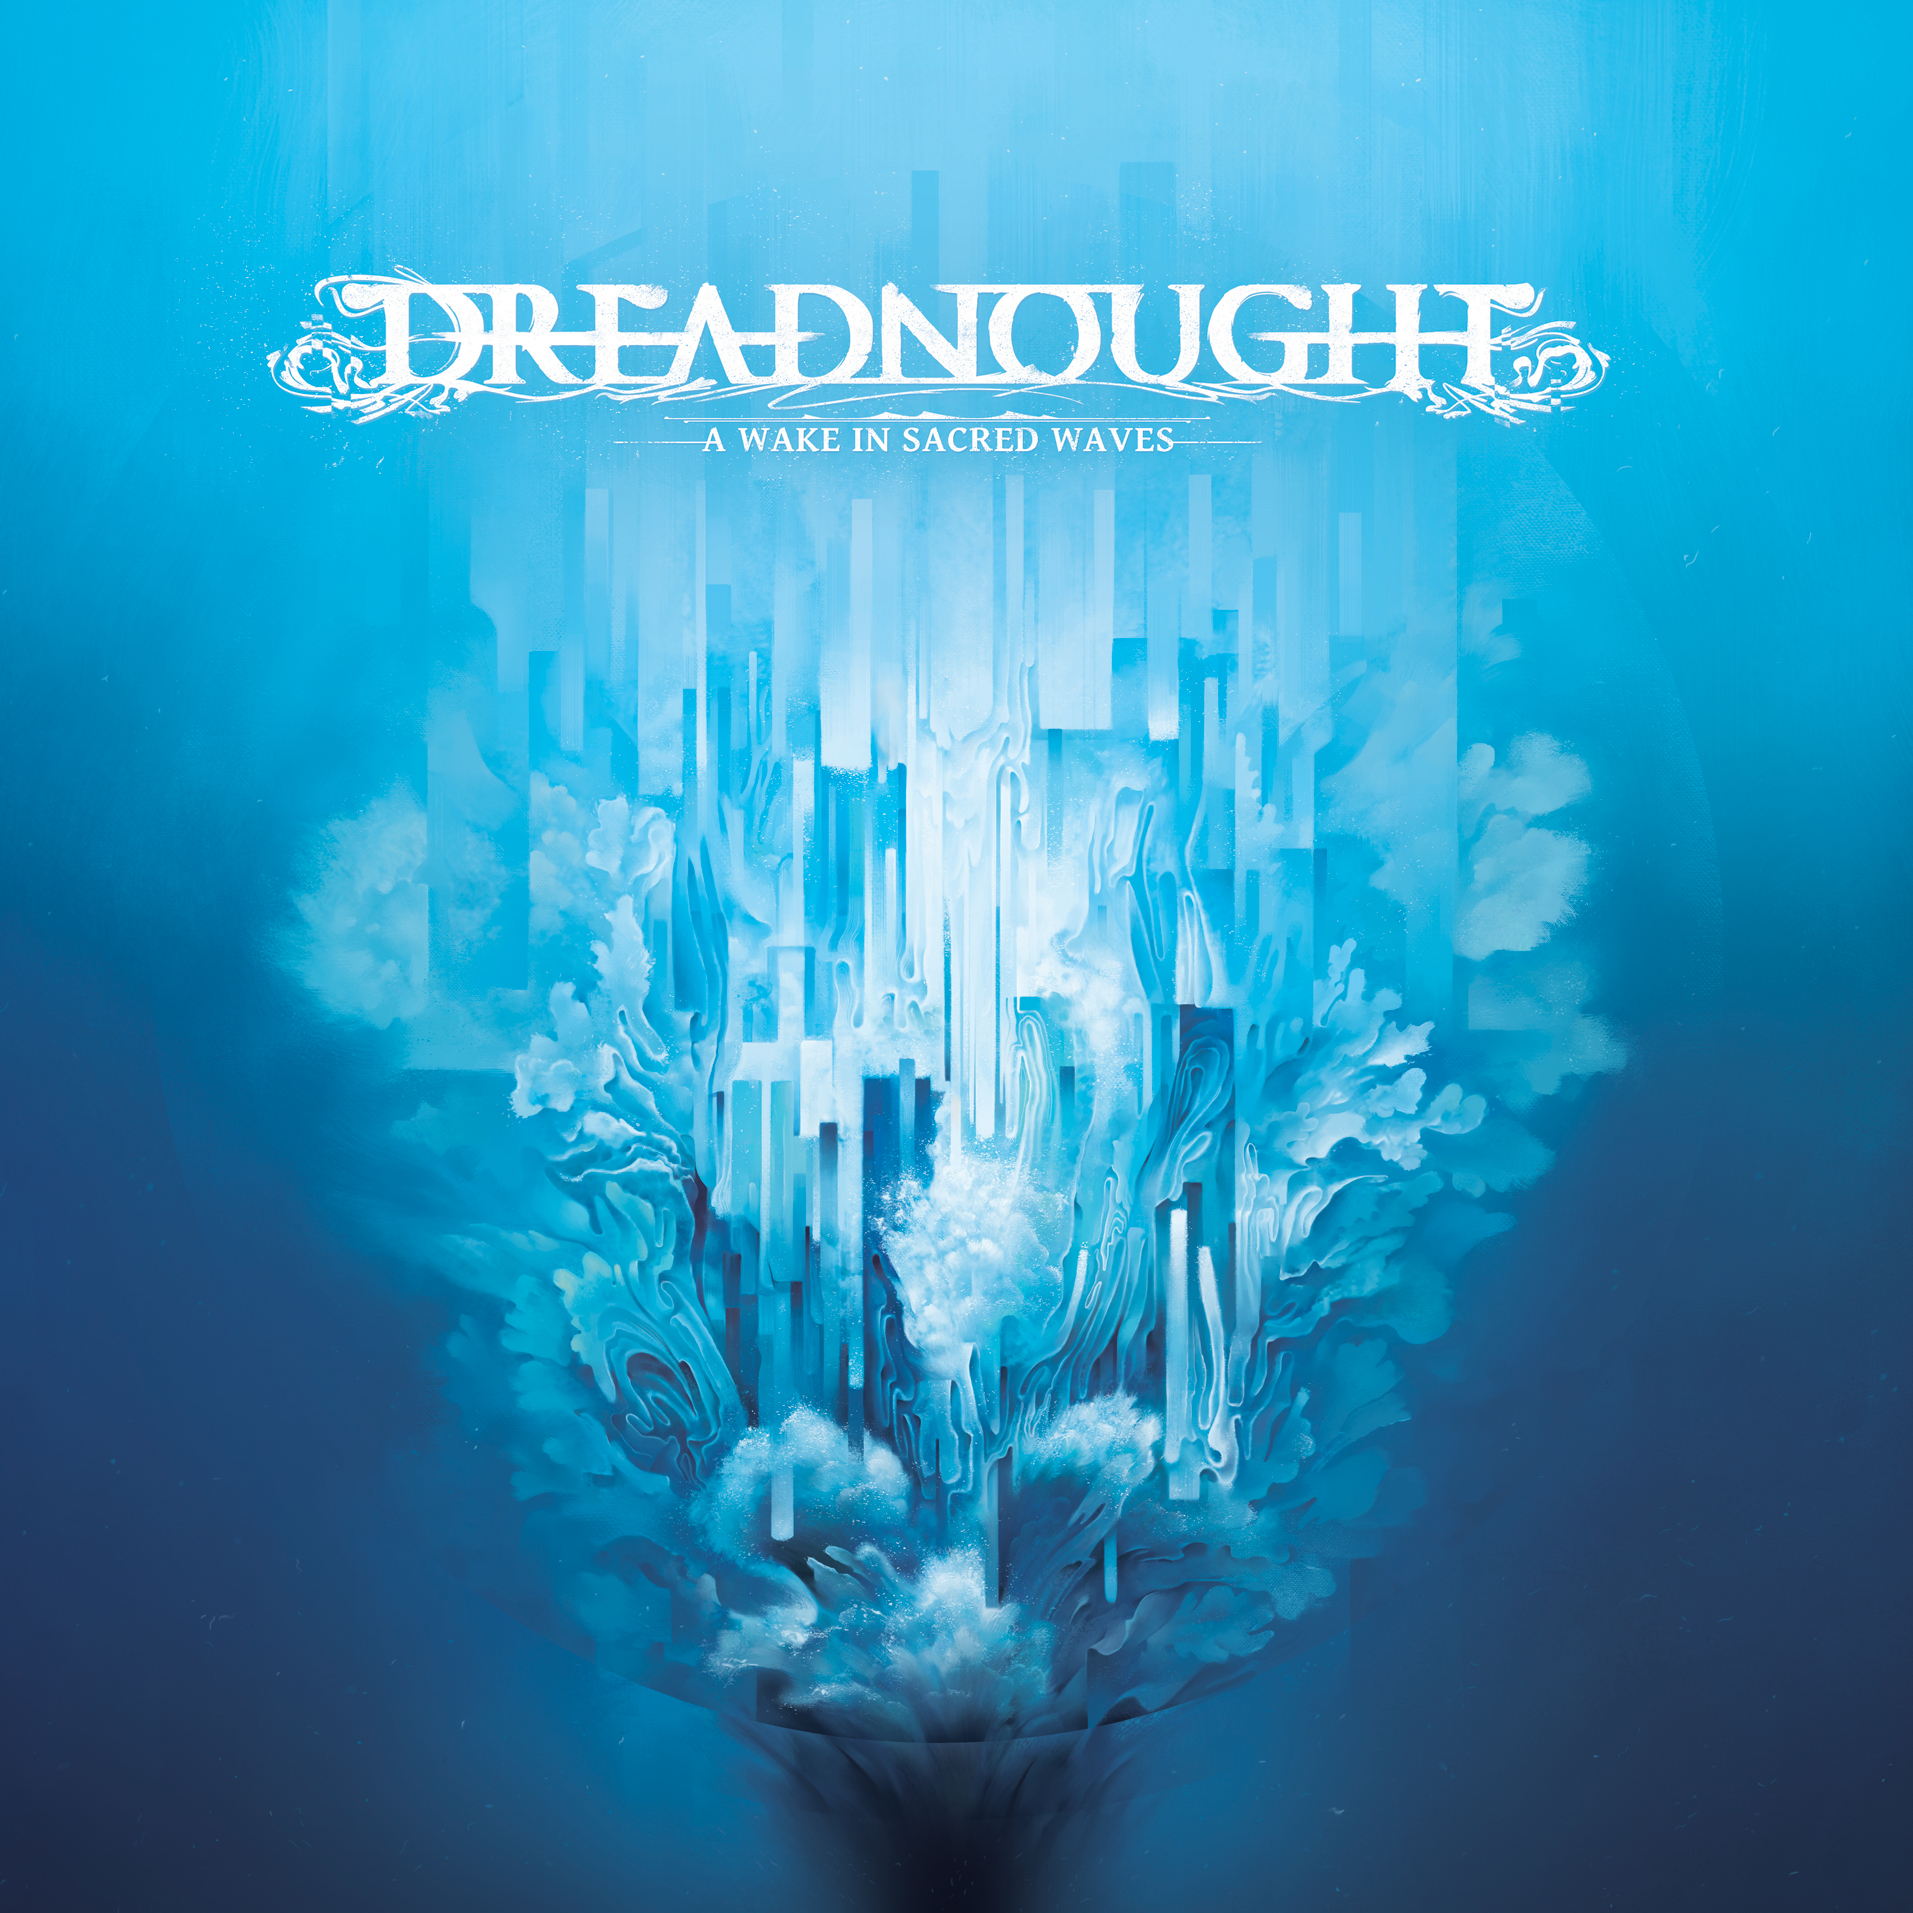 Dreadnought: A Wake in Sacred Waves